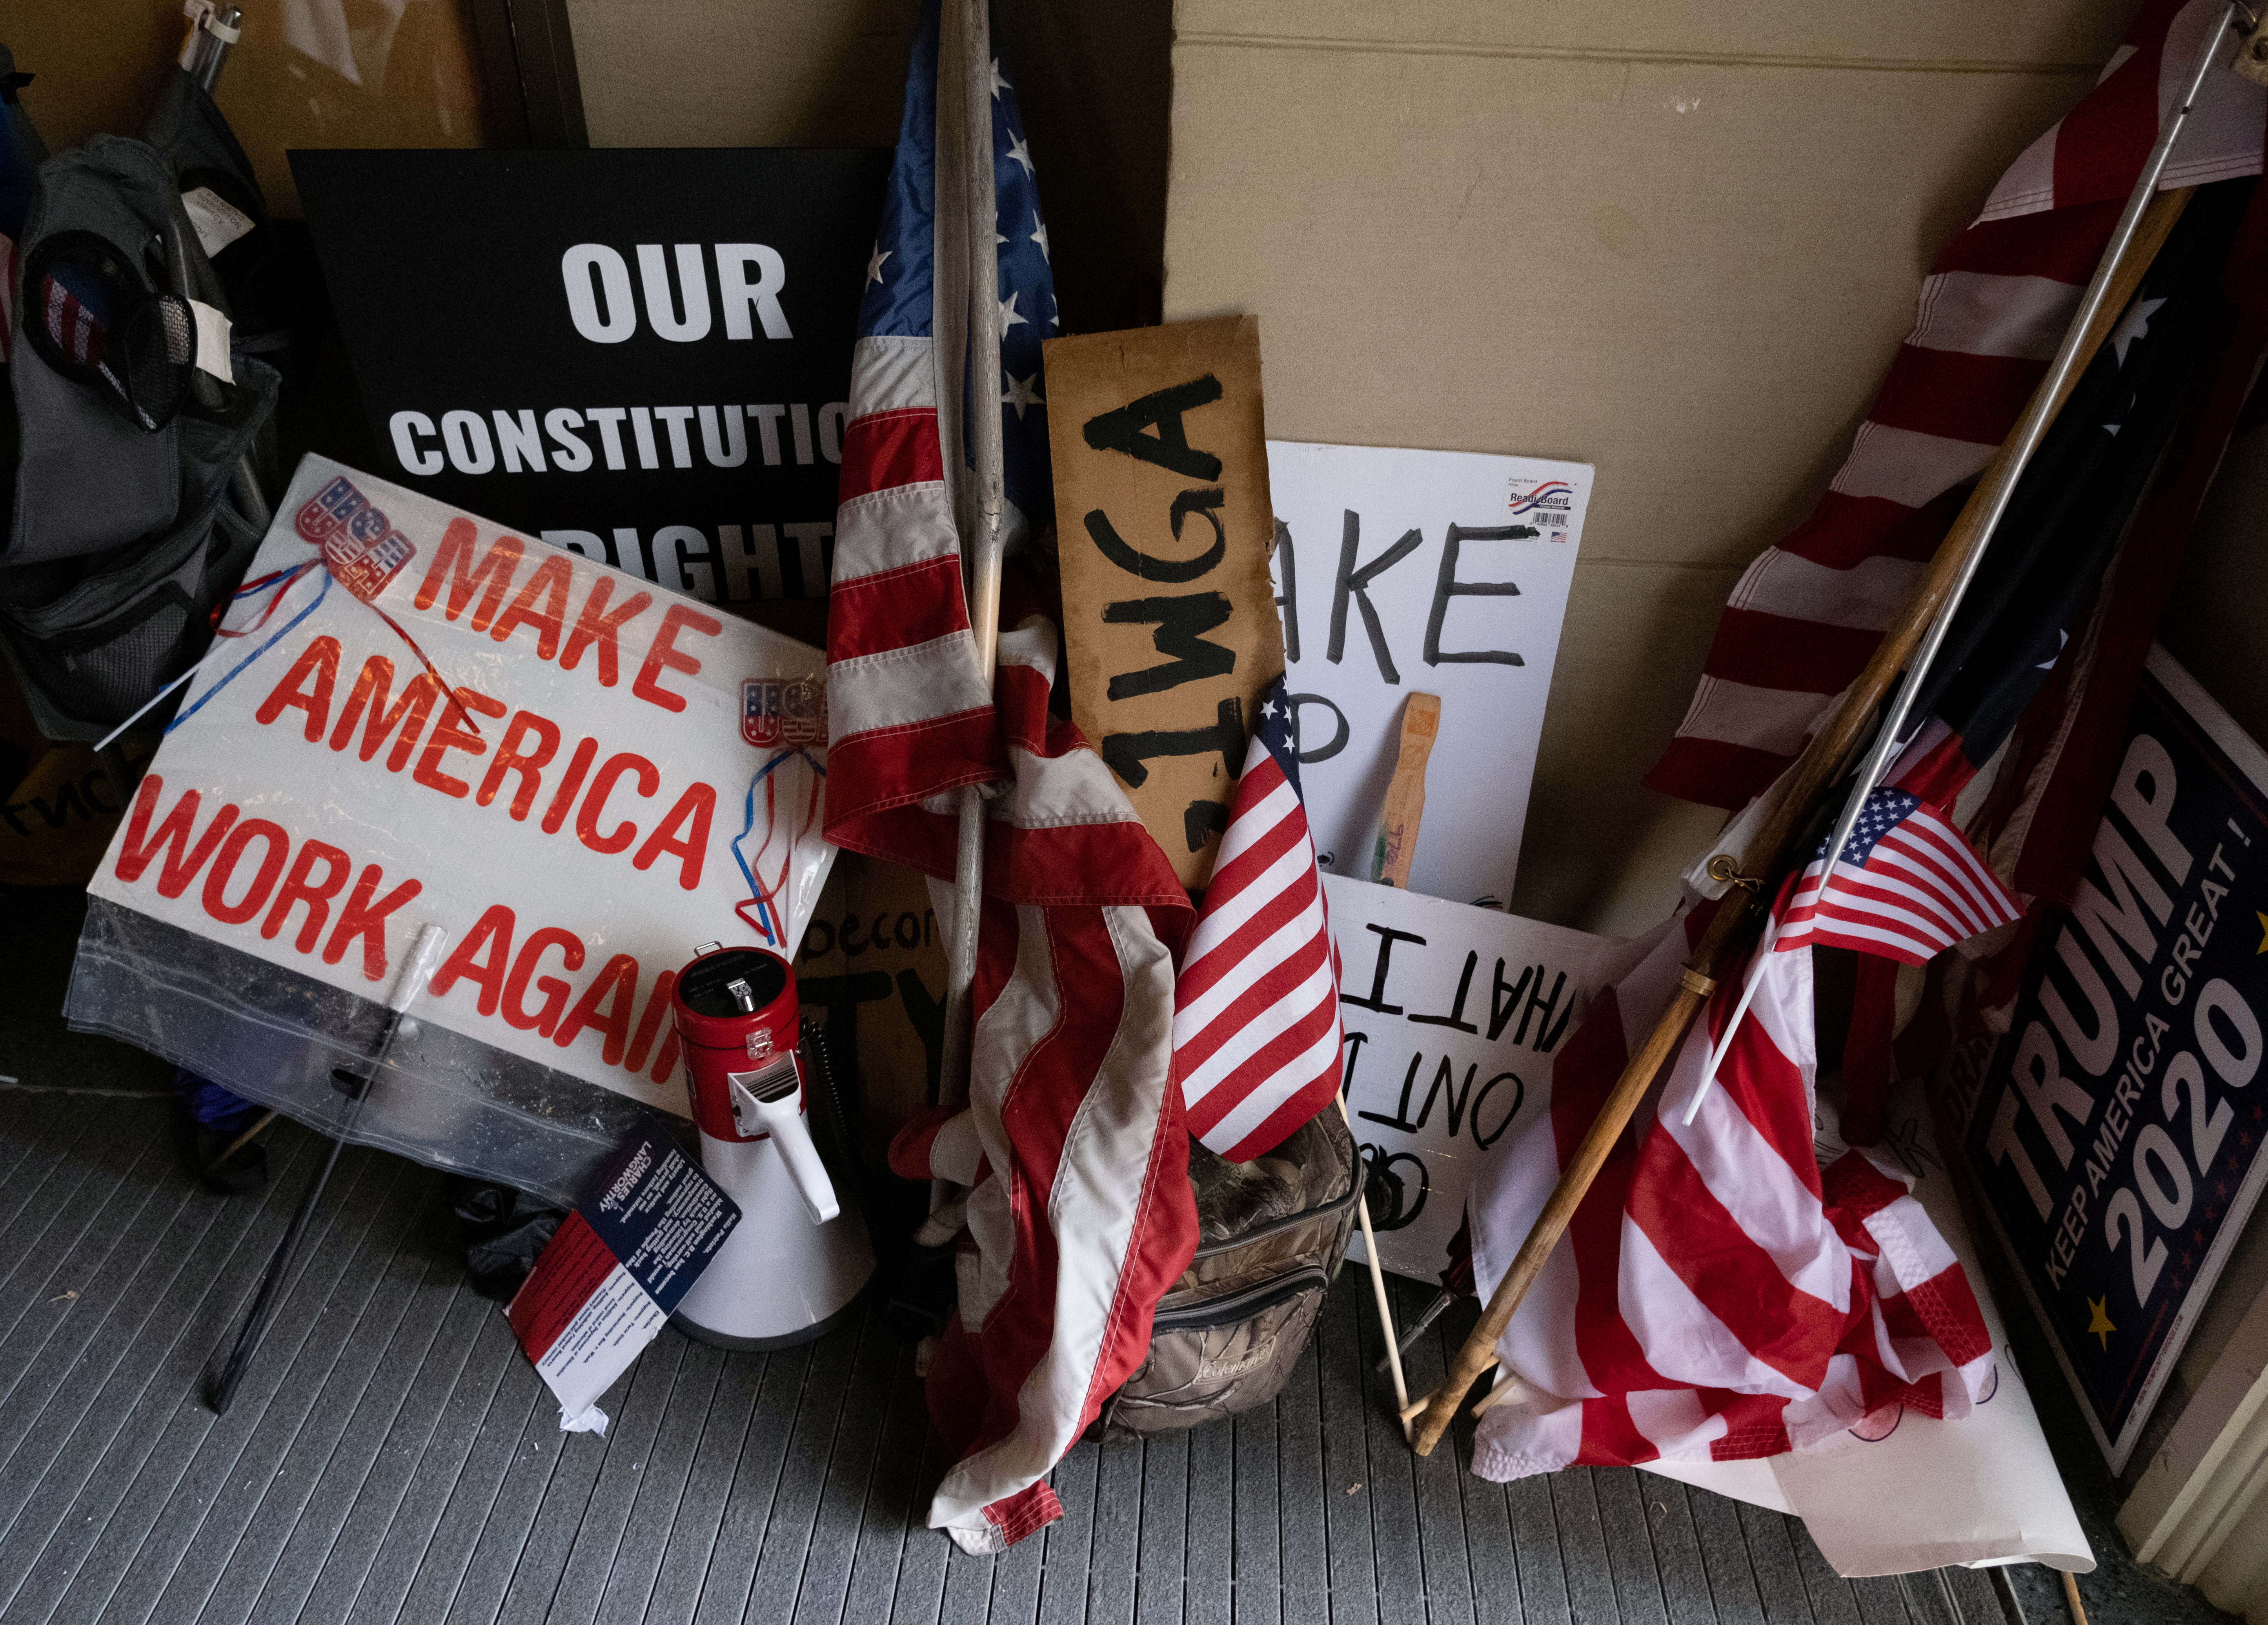 Protesters leave their flags and signs at the entrance of the state capitol building after protesters occupied the building during a vote to approve the extension of Governor Gretchen Whitmer's emergency declaration/stay-at-home order due to the coronavirus disease (COVID-19) outbreak, at the state capitol in Lansing, Michigan, U.S. April 30, 2020.  REUTERS/Seth Herald